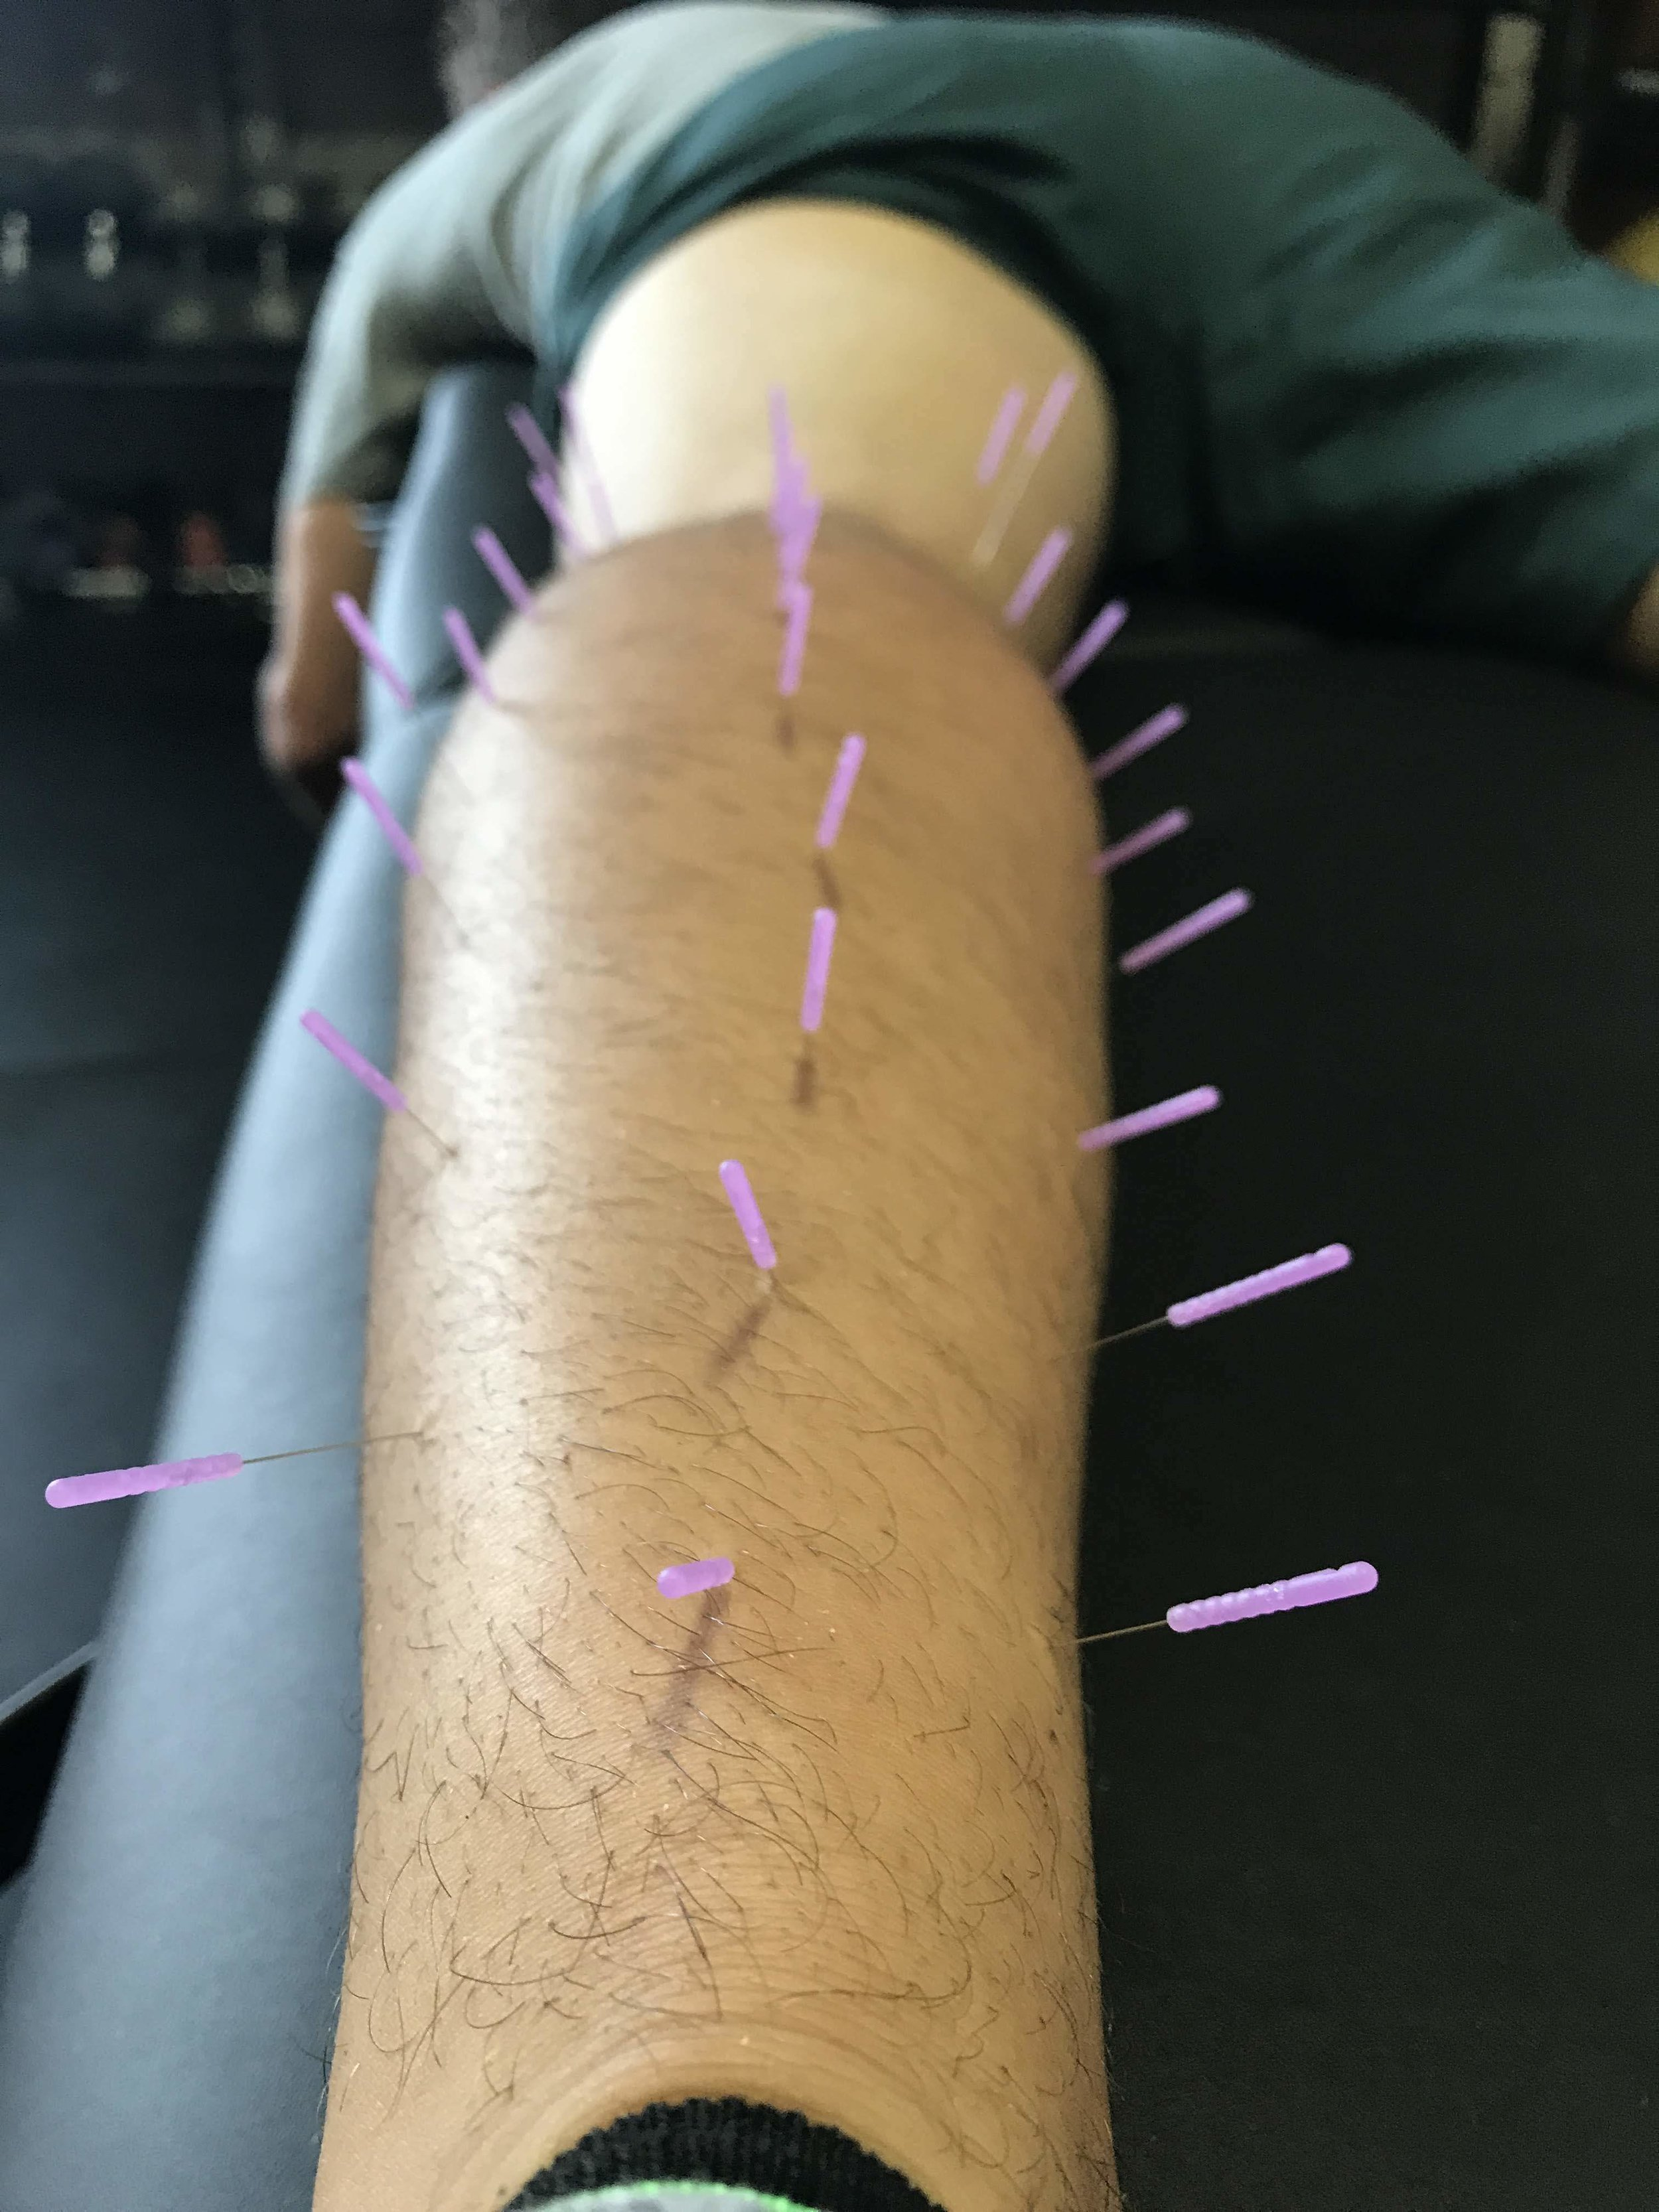 Using dry needling during a physical therapy treatment in Franklin, TN. This athlete is recovering form a calf muscle strain during a soccer match,